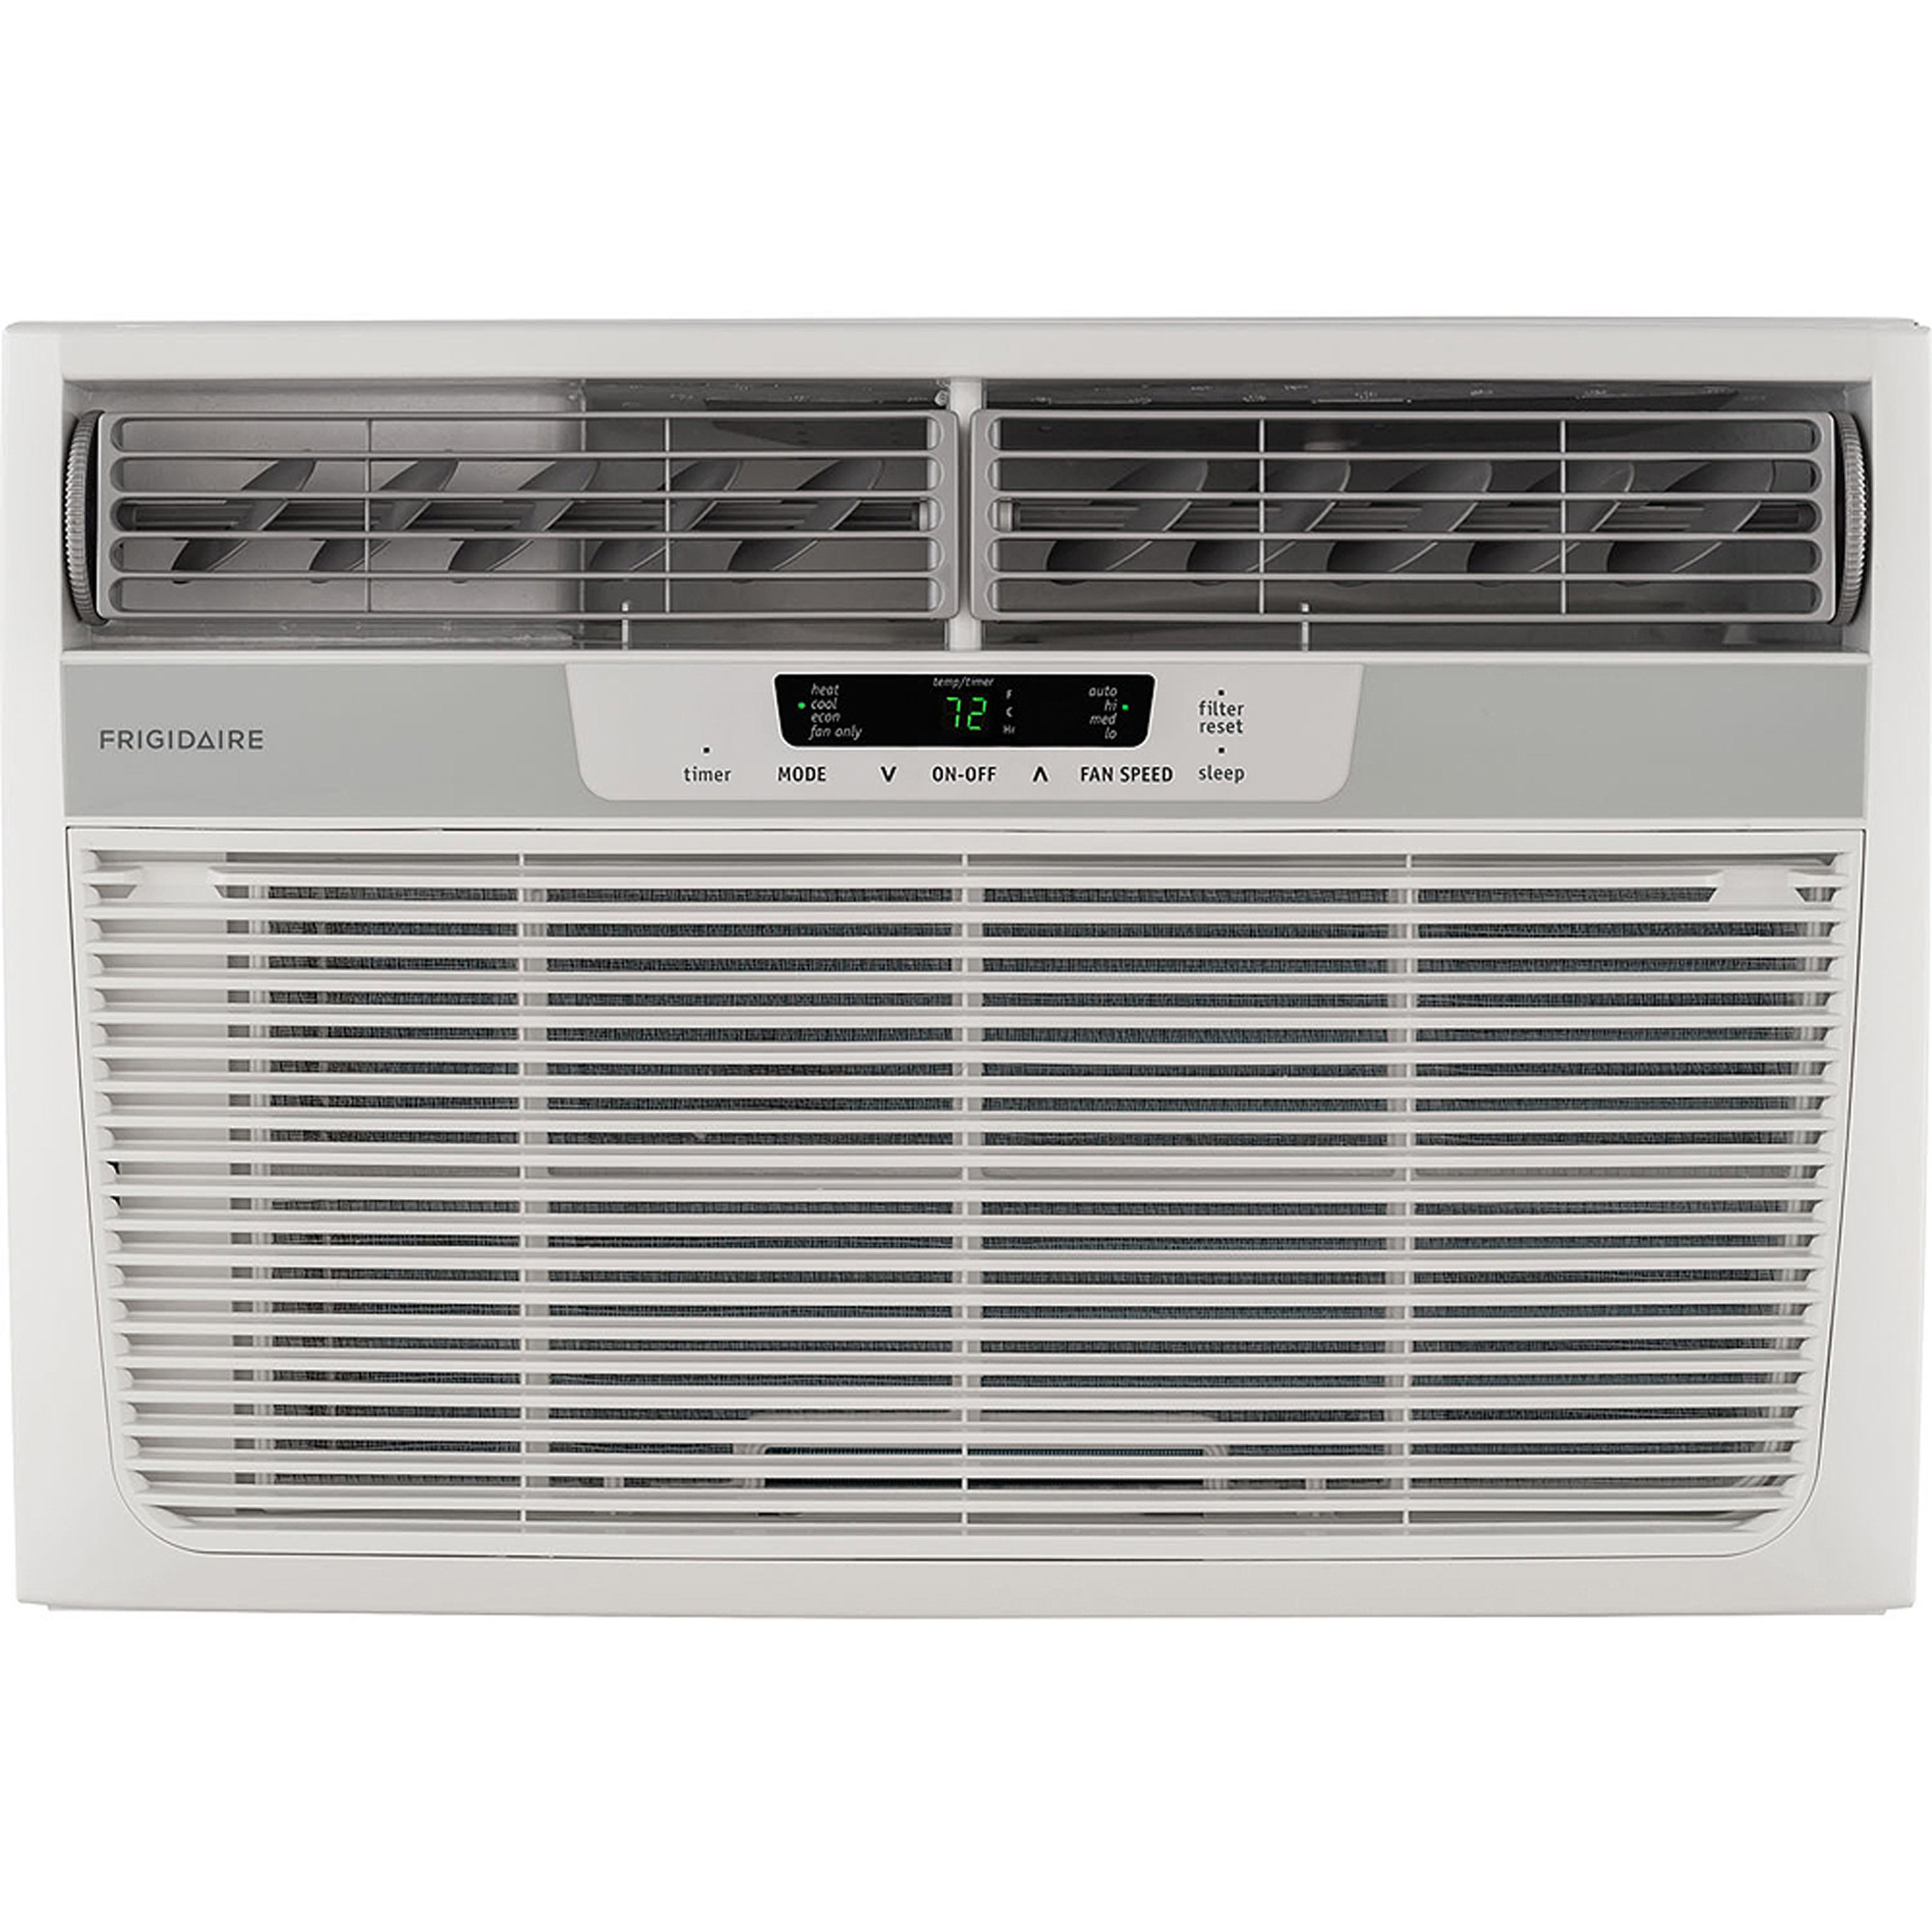 Frigidaire FFRH0822R1 8,000-BTU 115V Compact Slide-Out Chasis Air Conditioner/Heat Pump with Remote Control